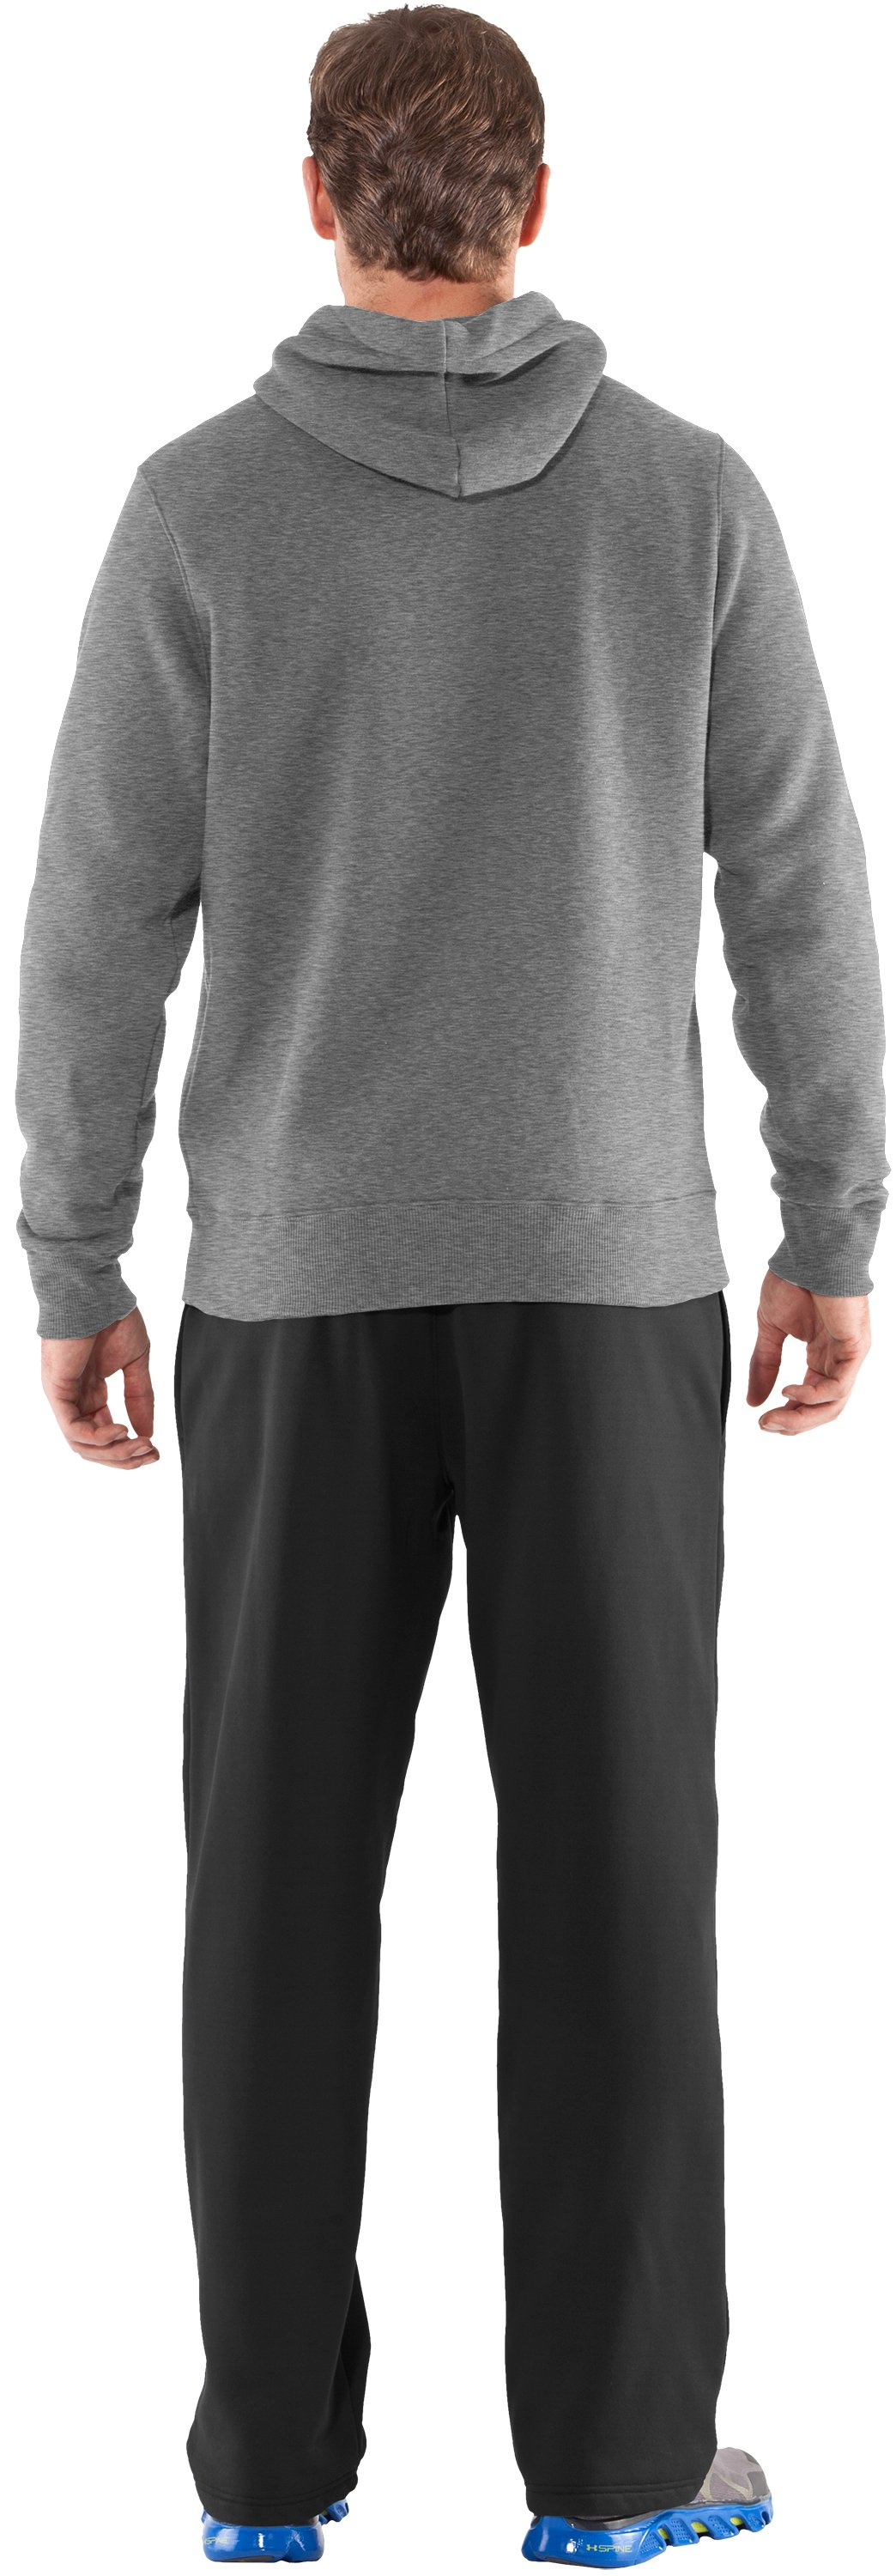 Men's Team Charged Cotton® Storm Hoodie, True Gray Heather, Back